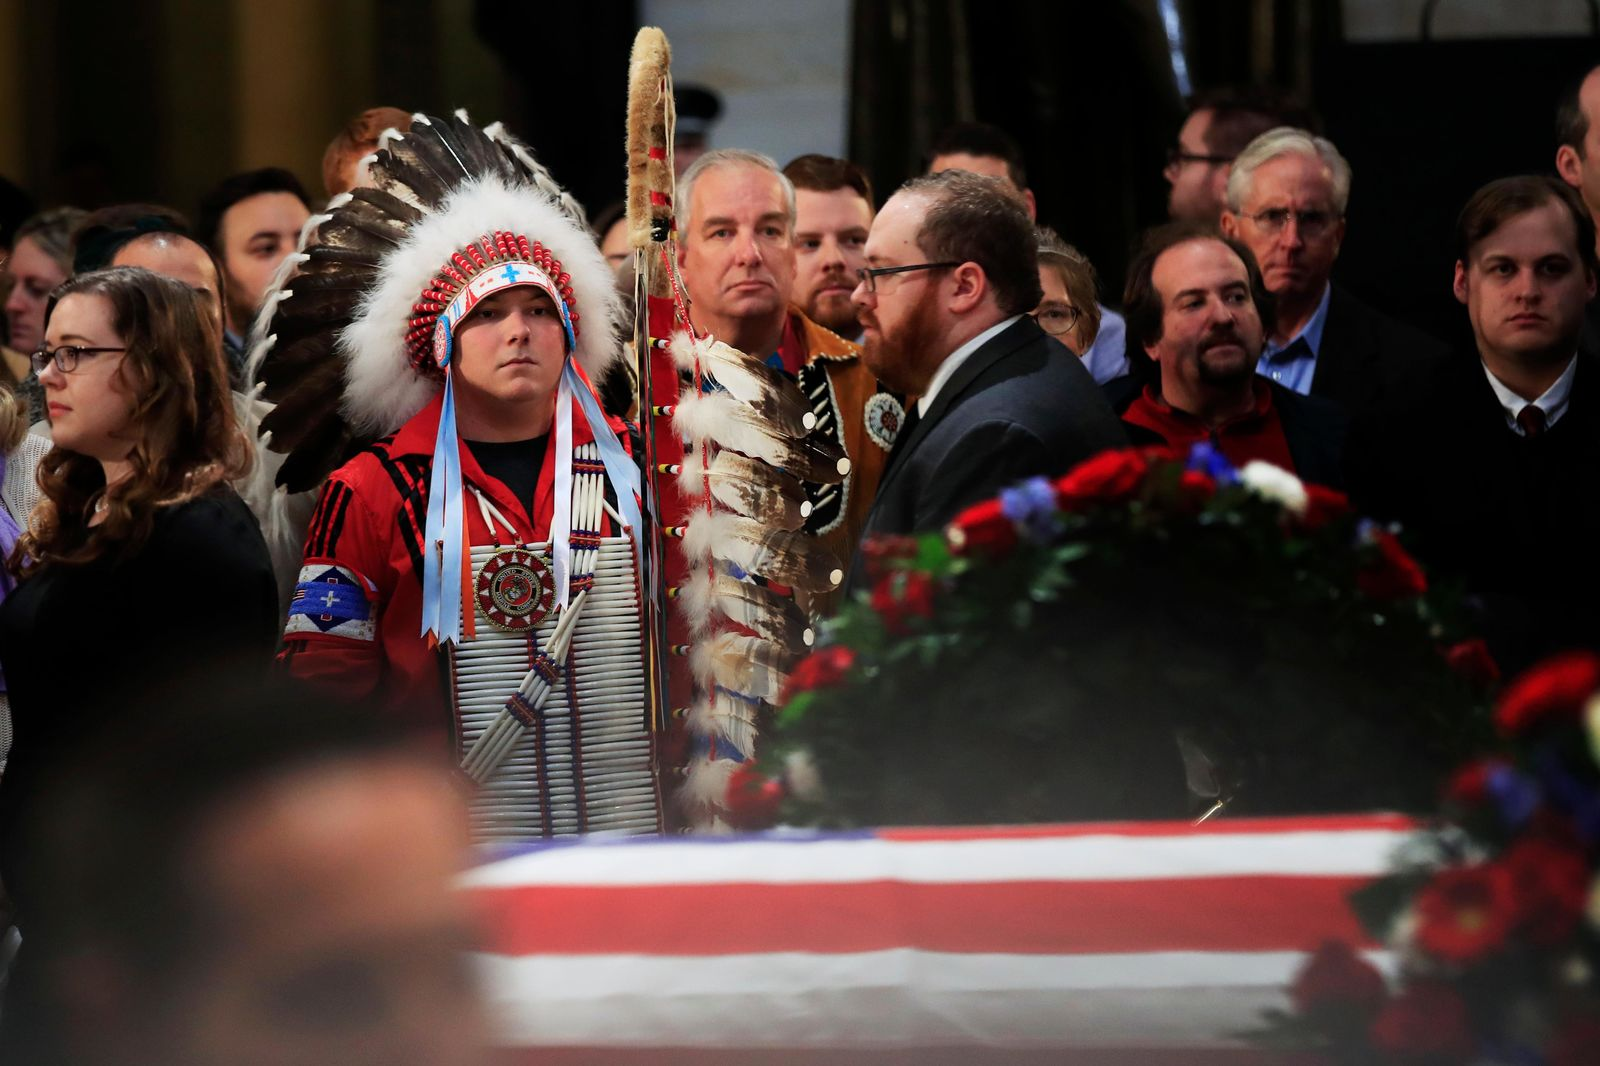 Native Americans Donald Woody, left, and Warren Stade of the Shakopee Mdewakanton Sioux Community tribe in Prior Lake, Minn., pay their last respects to former President George H.W. Bush as he lies in state at the U.S. Capitol in Washington, Tuesday, Dec. 4.{ } (AP Photo/Manuel Balce Ceneta)